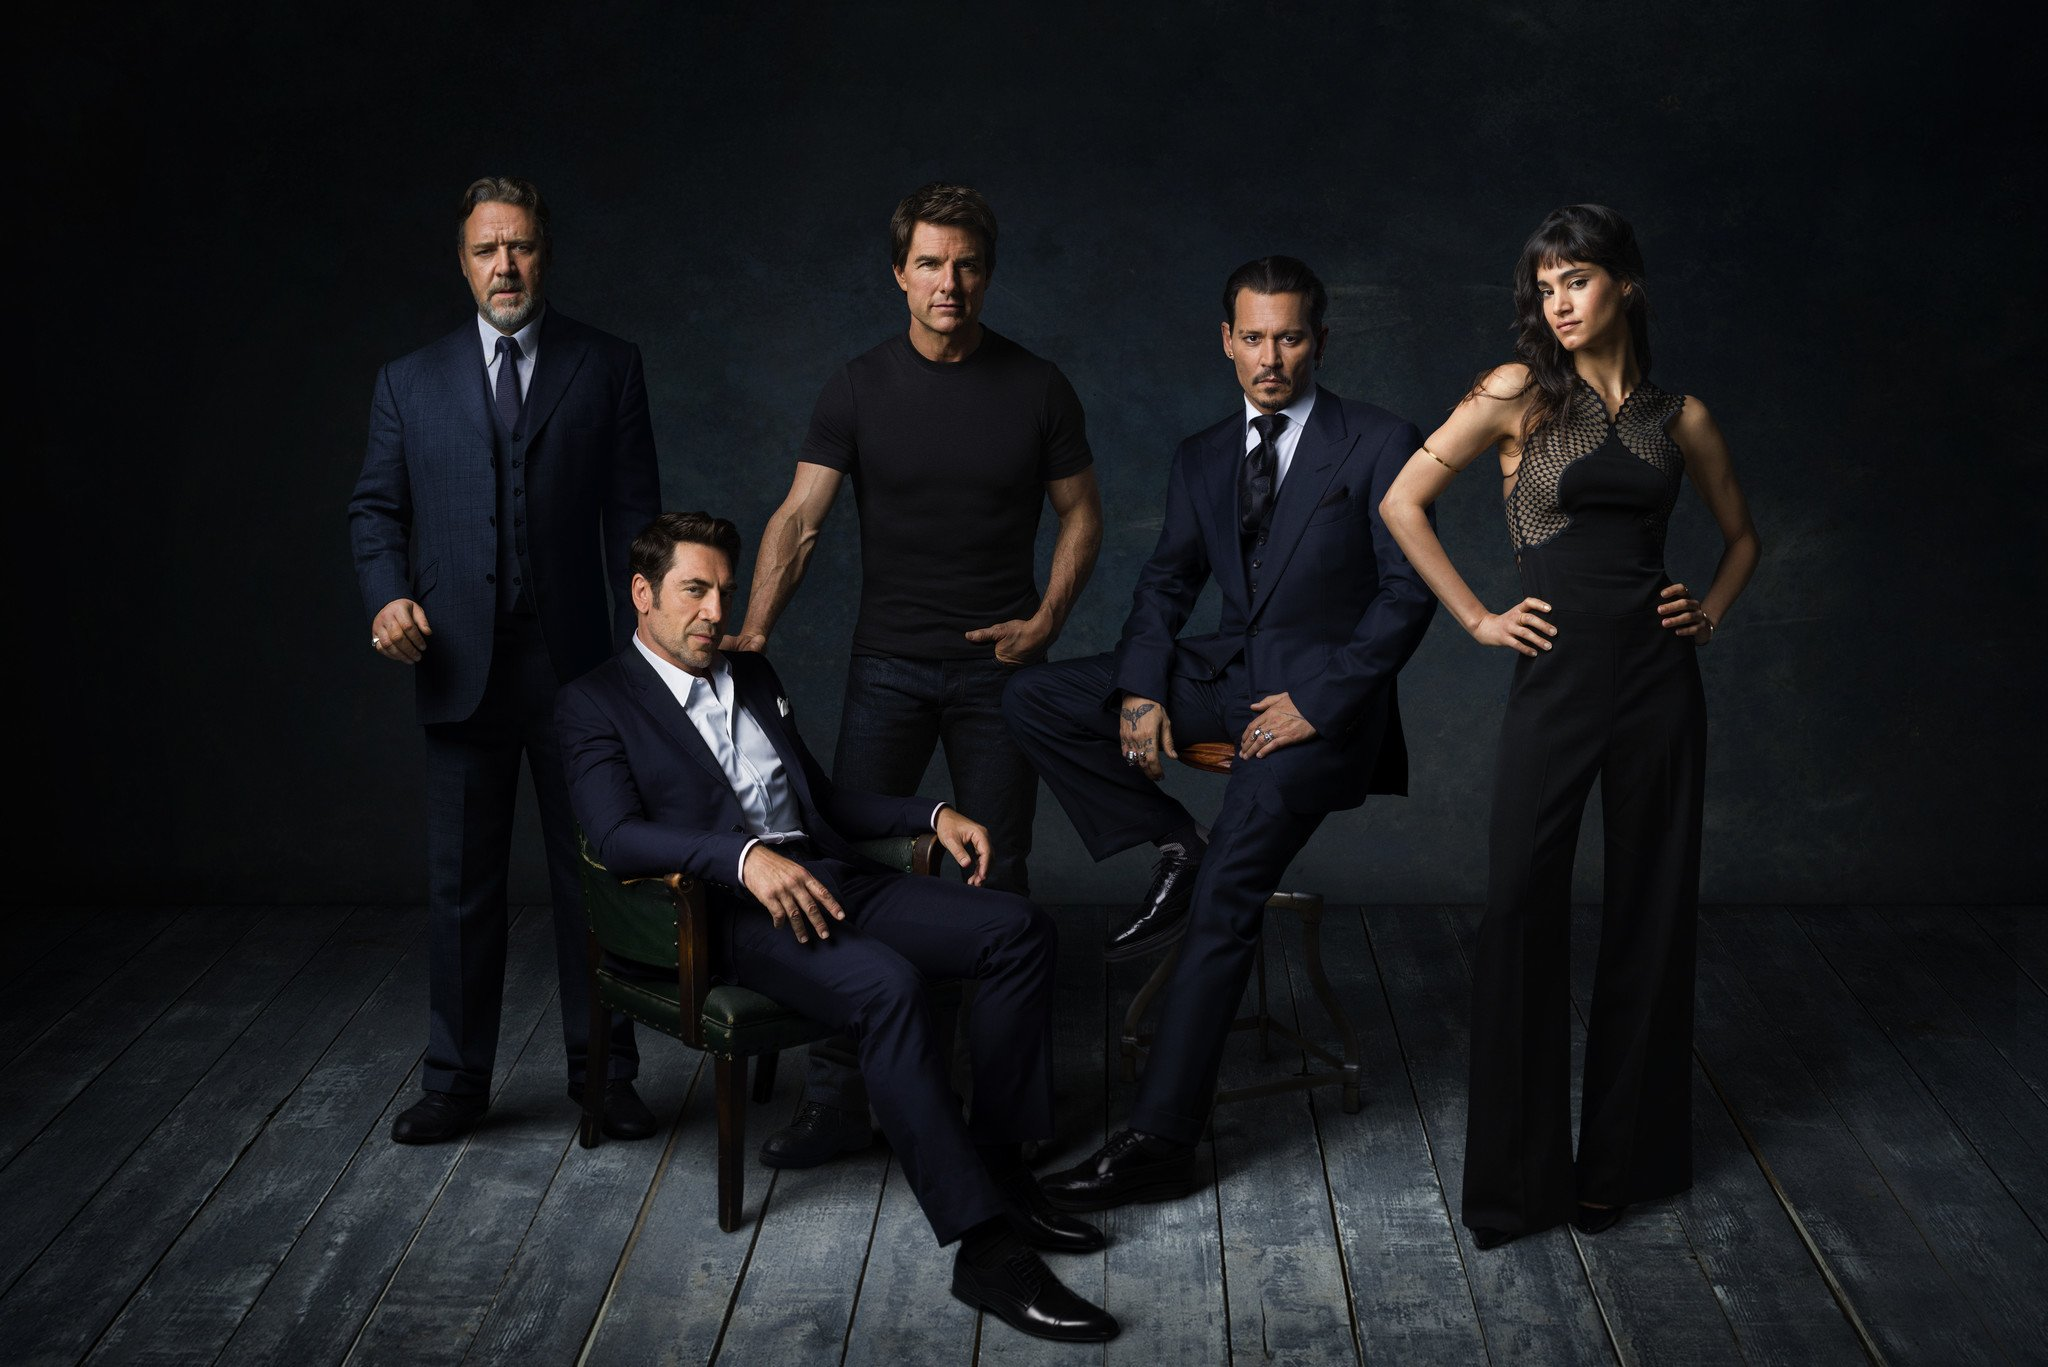 Photo des monstres du Dark Universe avec Russell Crowe, Javier Bardem, Tom Cruise, Johnny Depp et Sofia Boutella